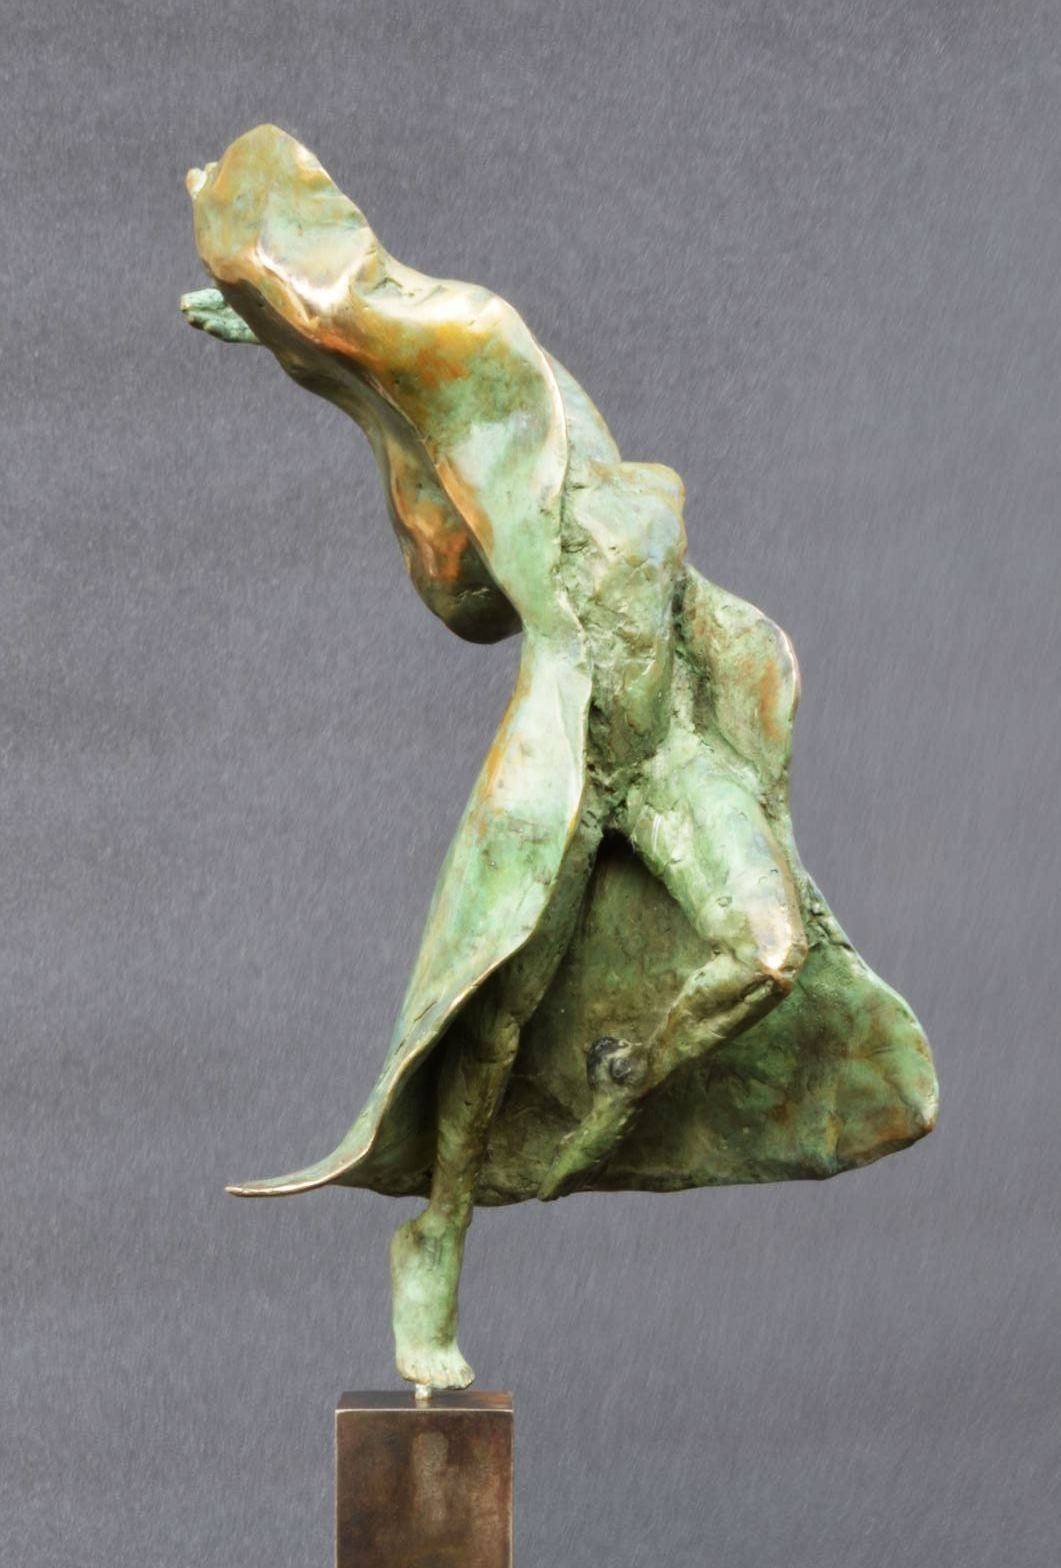 Danseuse moderne III,Yann Guillon,Sculpture, detail 1